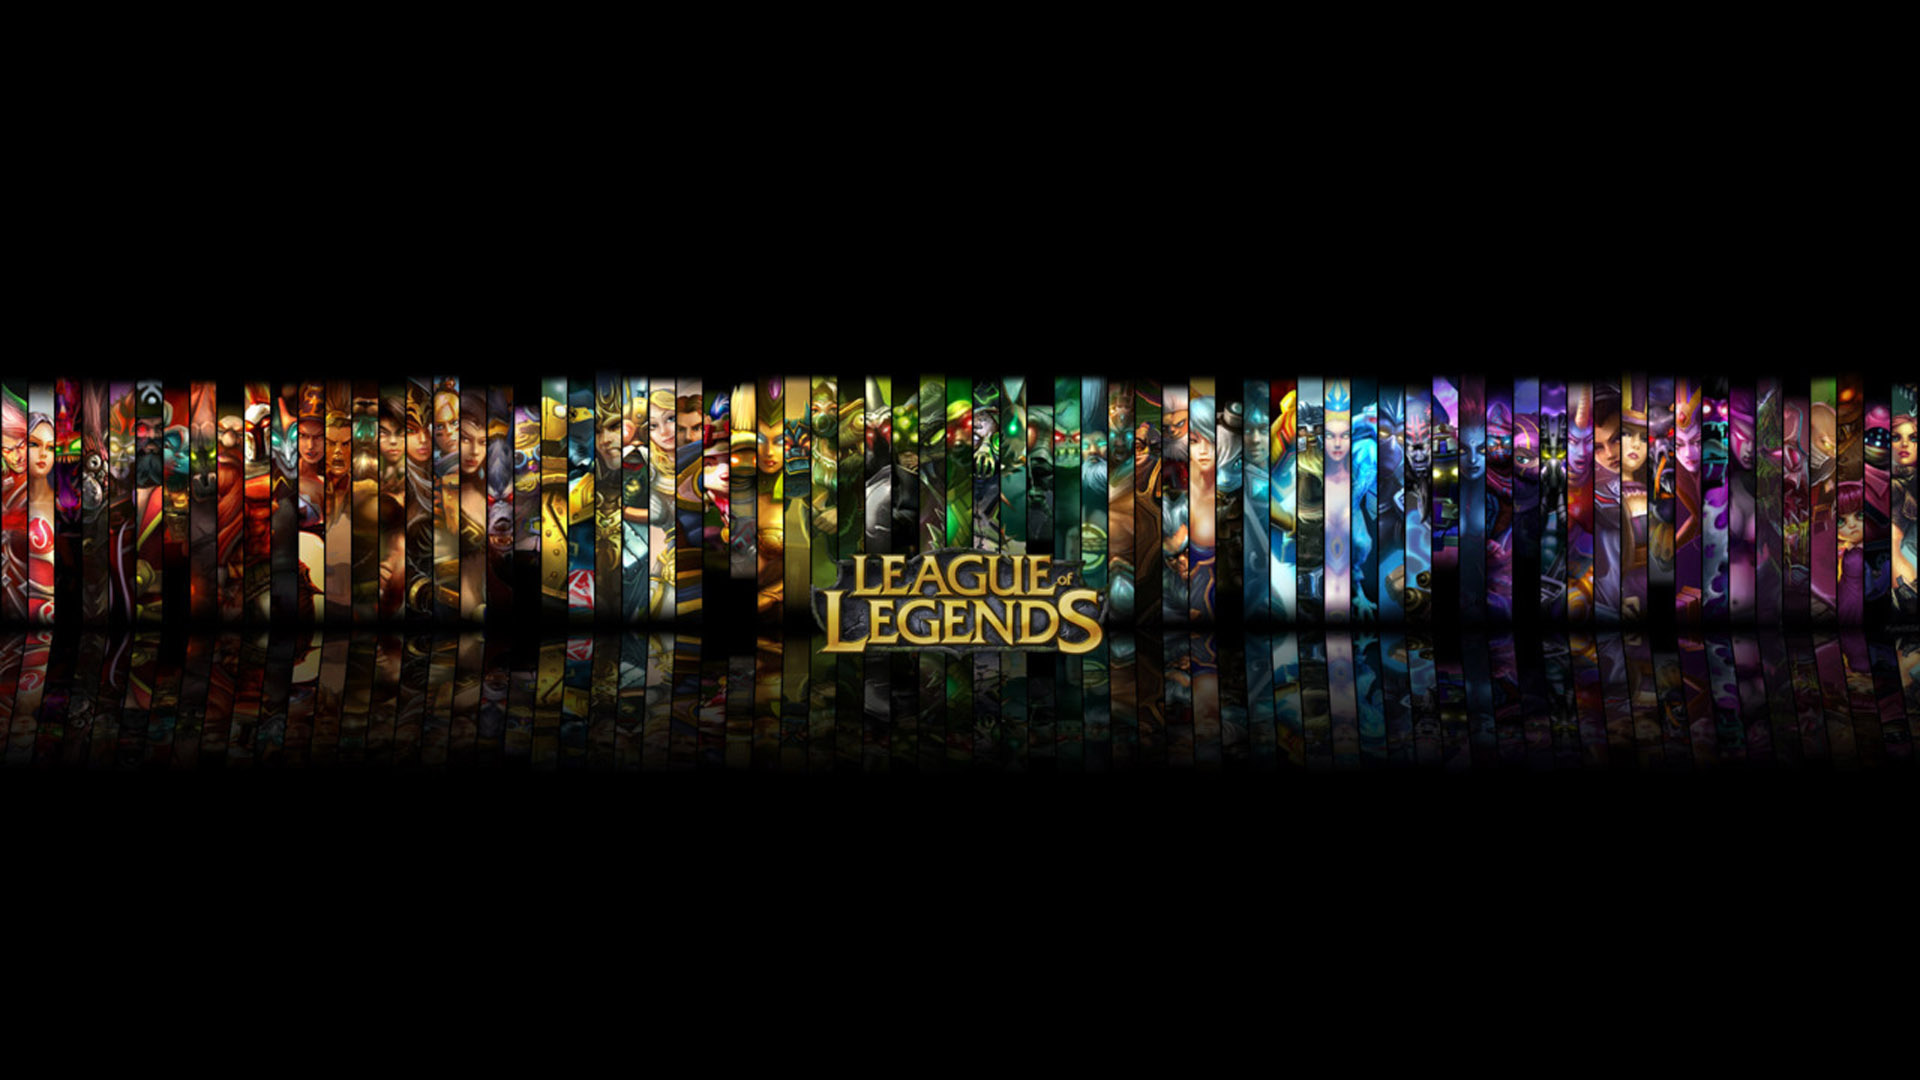 League of Legends Hero Collection HD Wallpaper » FullHDWpp - Full HD ...